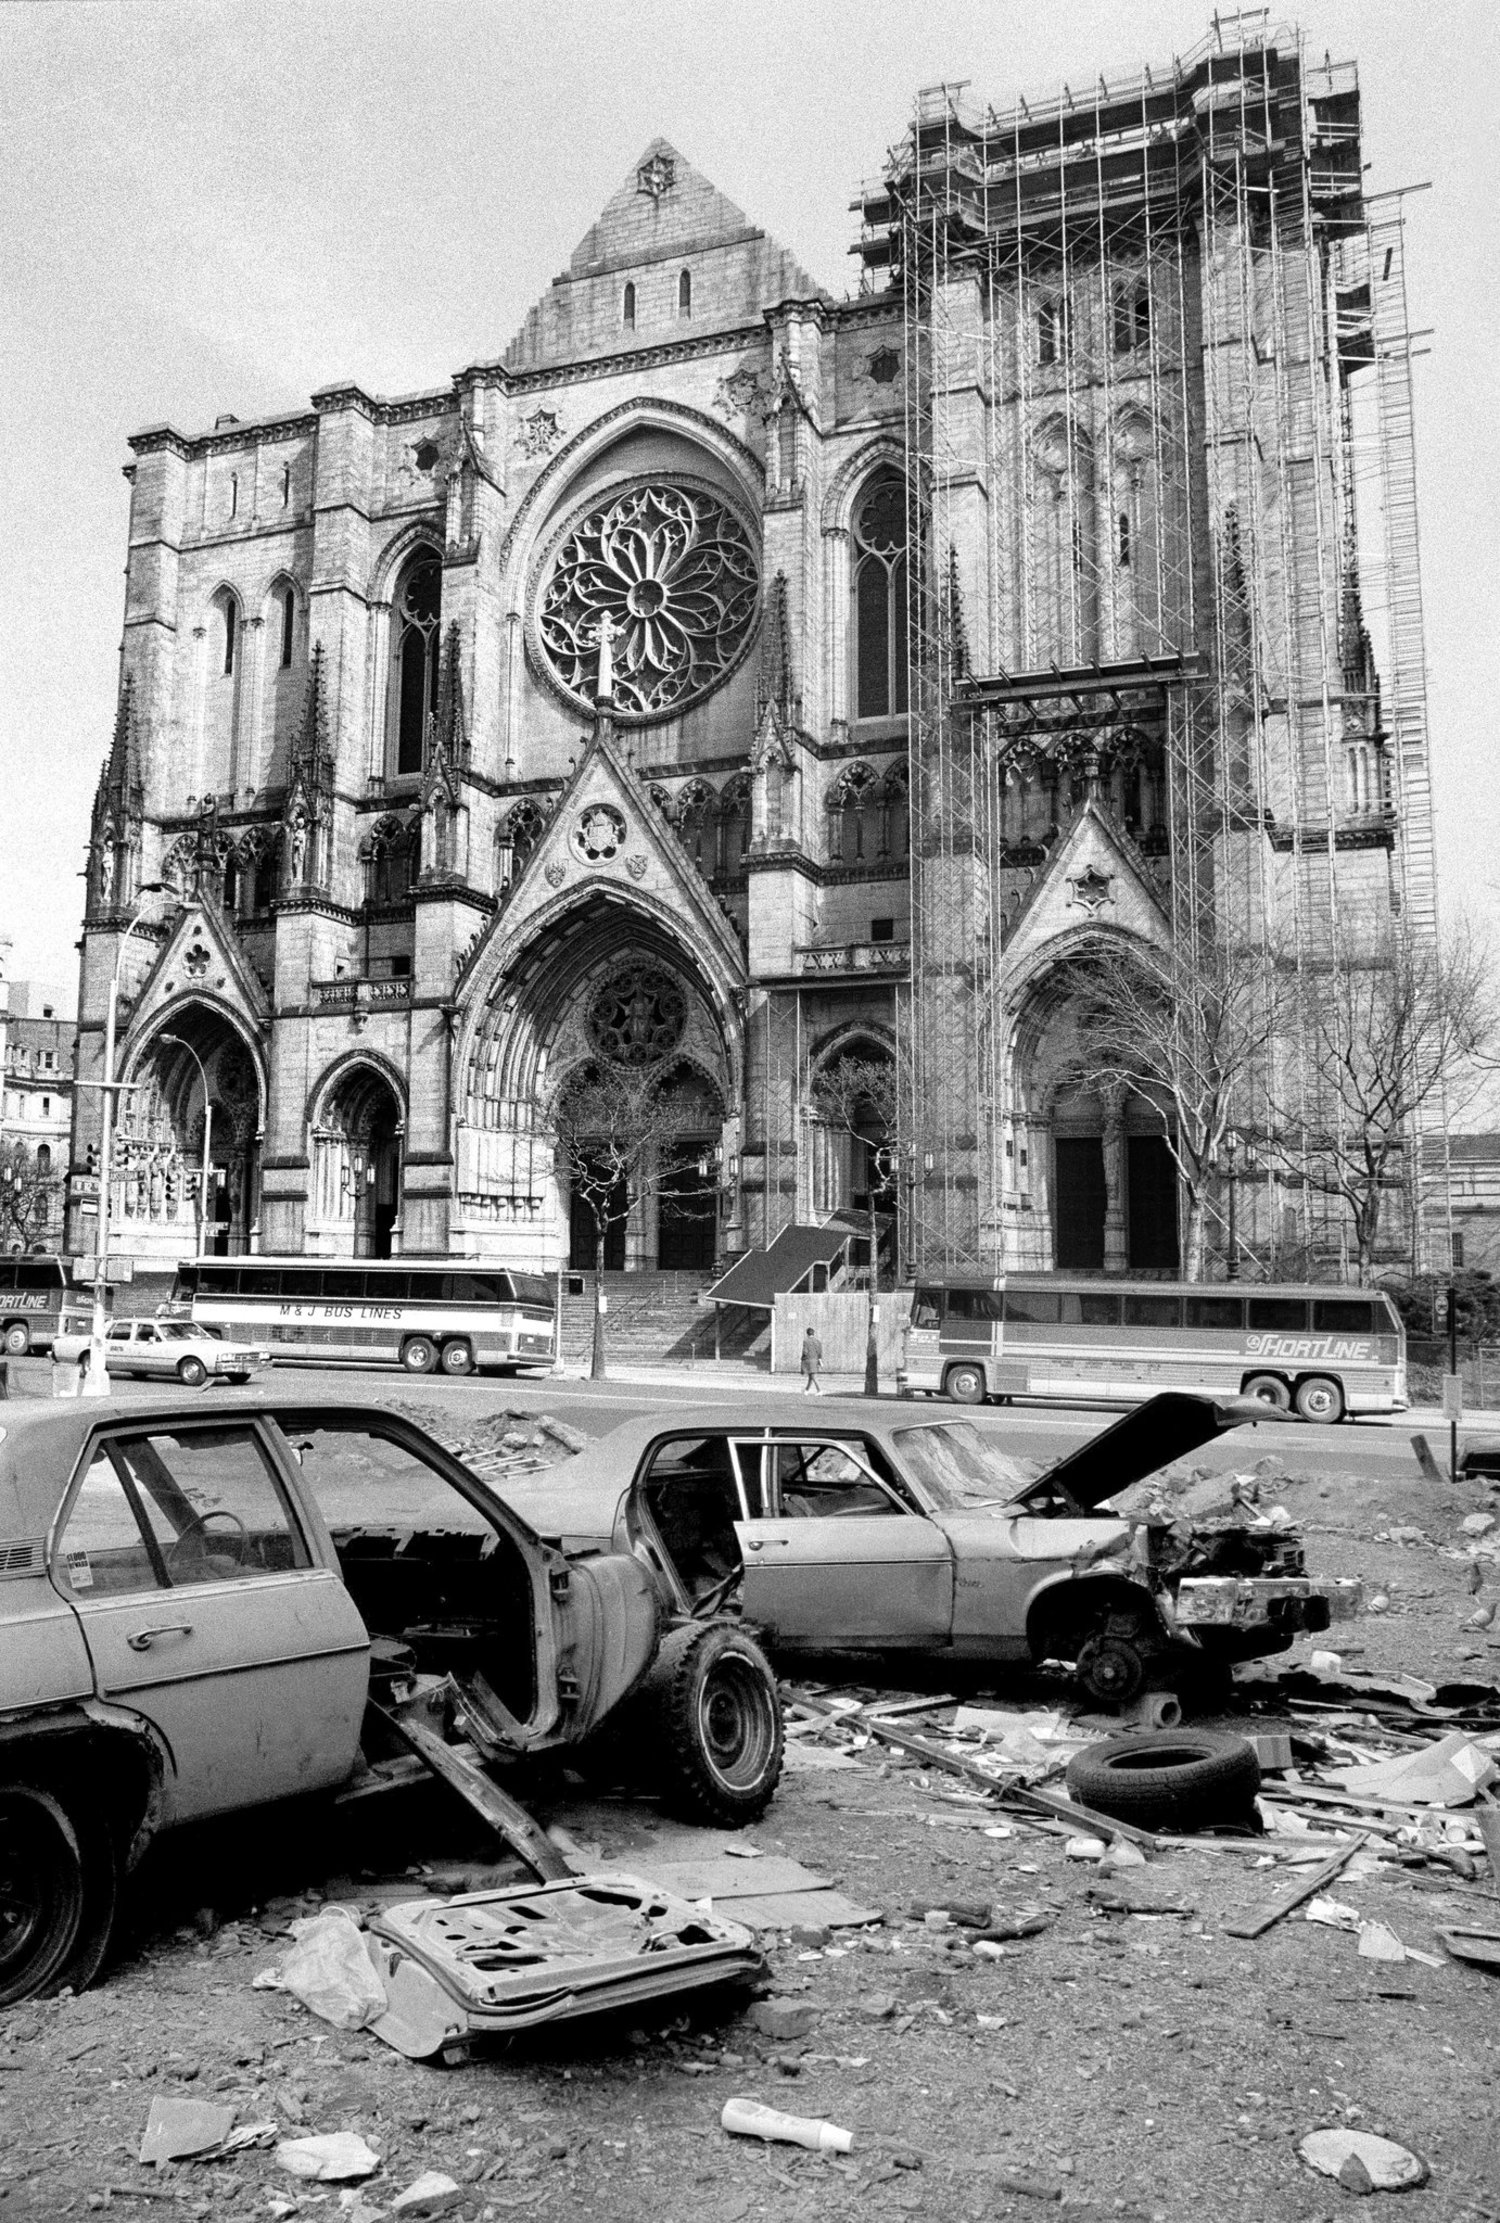 Abandoned cars littered Amsterdam Avenue and 112th Street, across the street from the Cathedral of St. John the Divine. April 10, 1985.